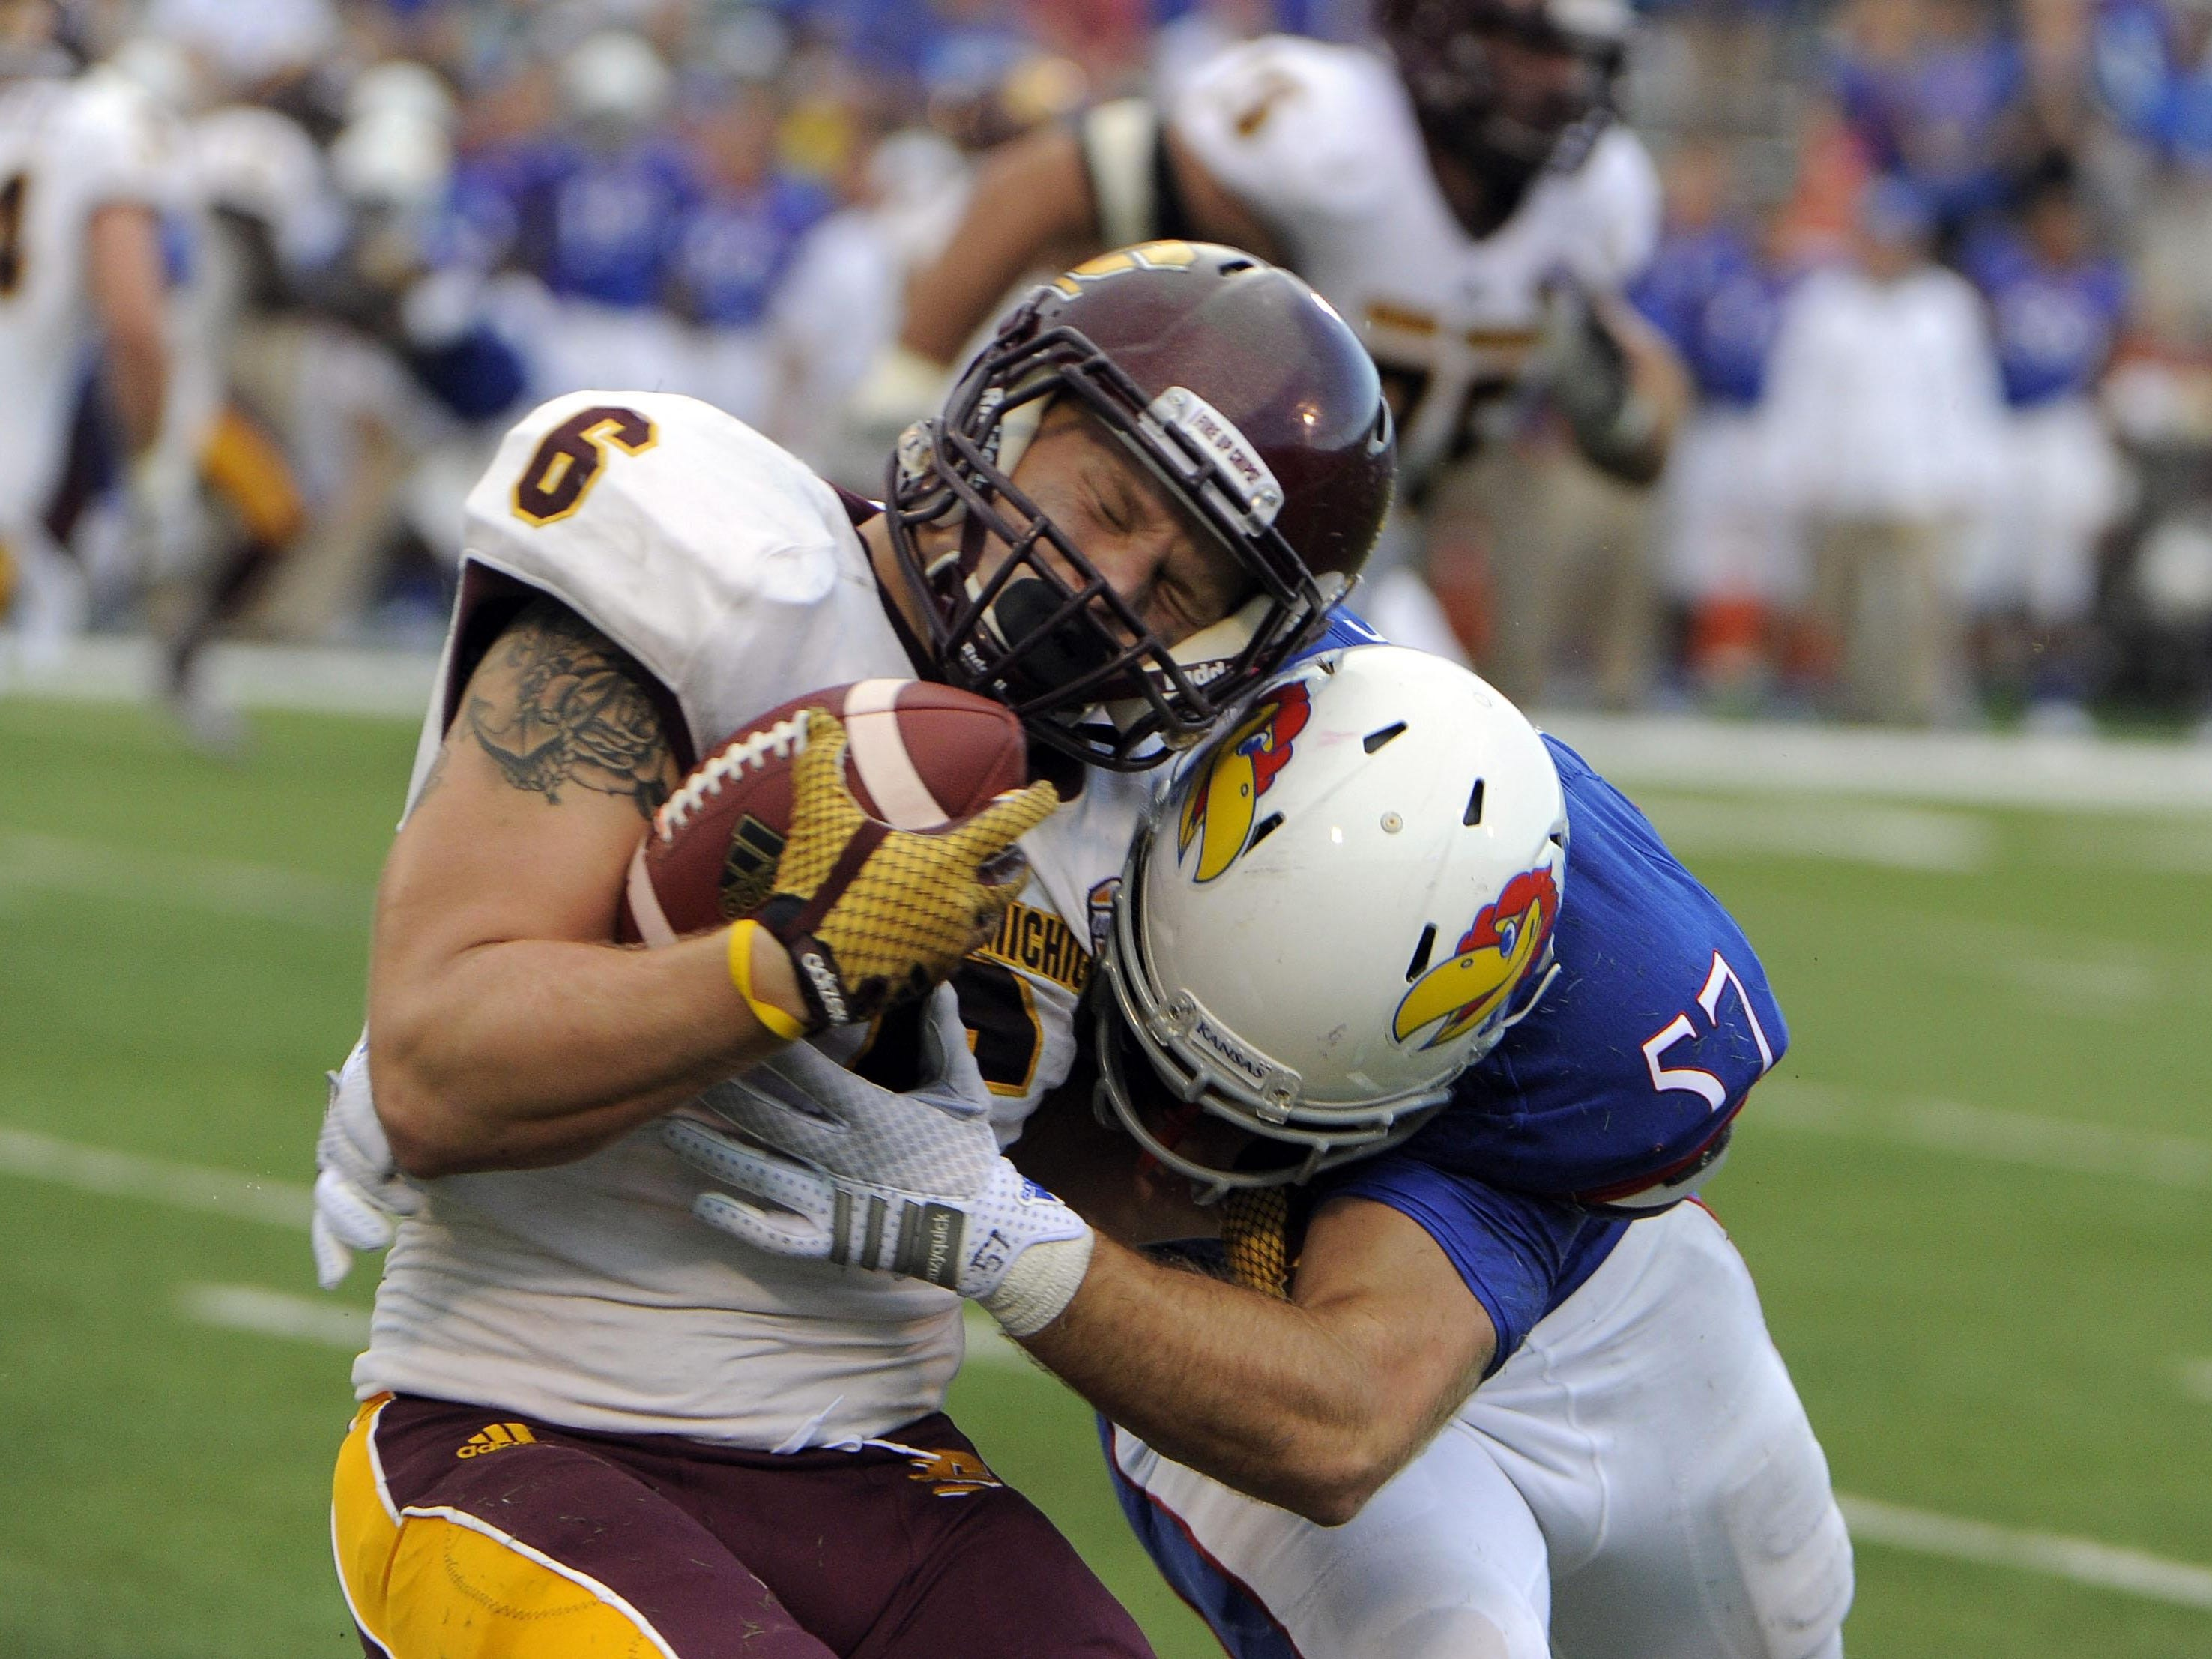 Senior running back Saylor Lavallii will serve as a student assistant coach for CMU this fall.